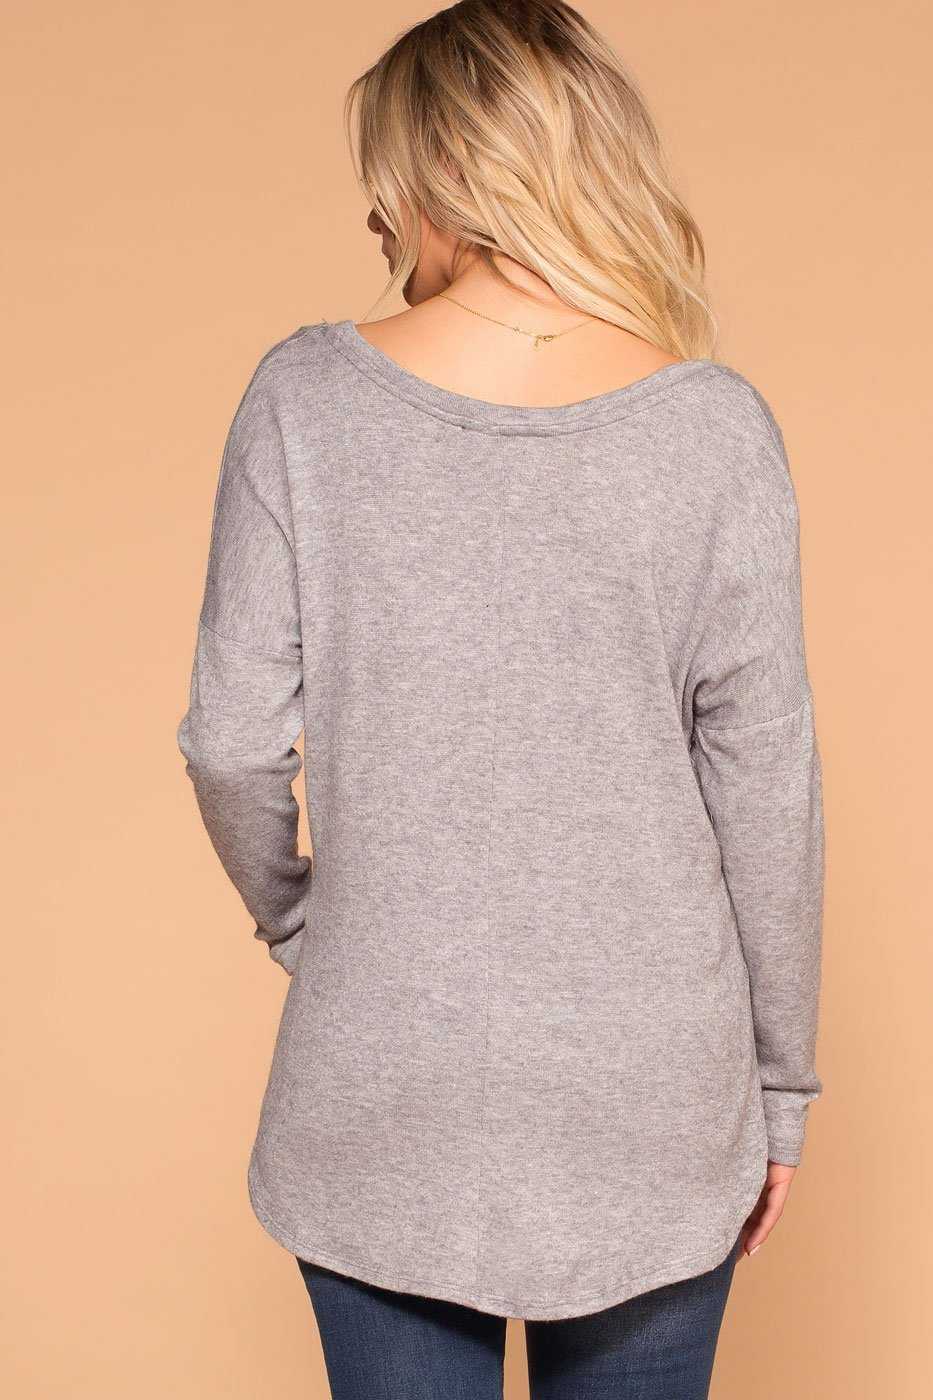 Priceless | Heather Grey | V-Neck Top | Long-Sleeve Top | Womens